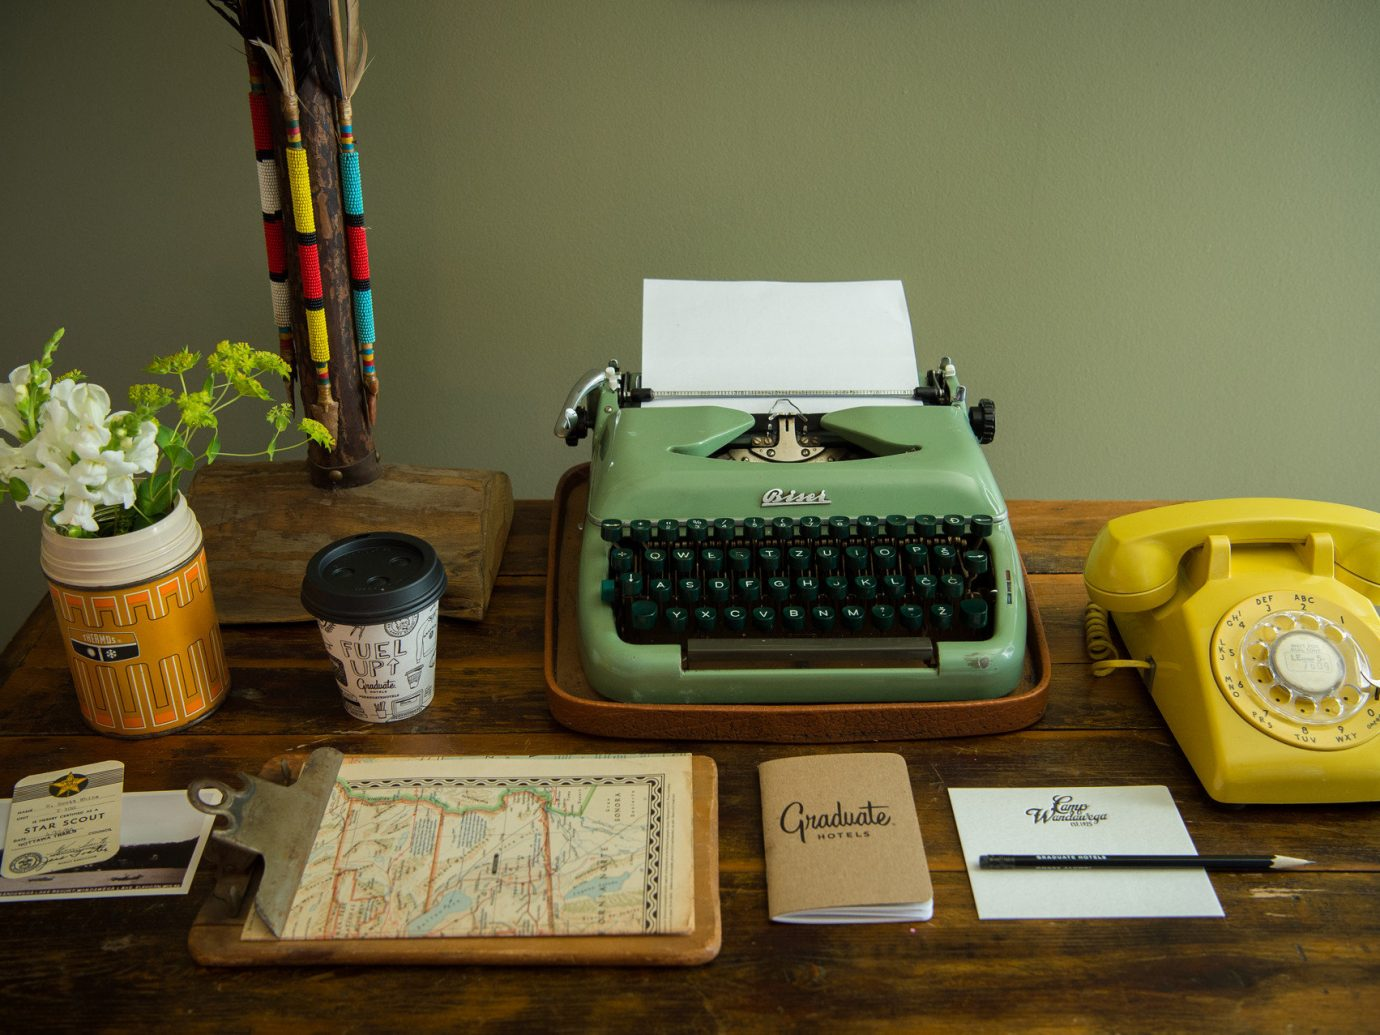 artistic artsy Boutique charming cozy decor desk detail Hip homey interior trendy Trip Ideas color indoor green yellow art Design personal computer hardware cluttered